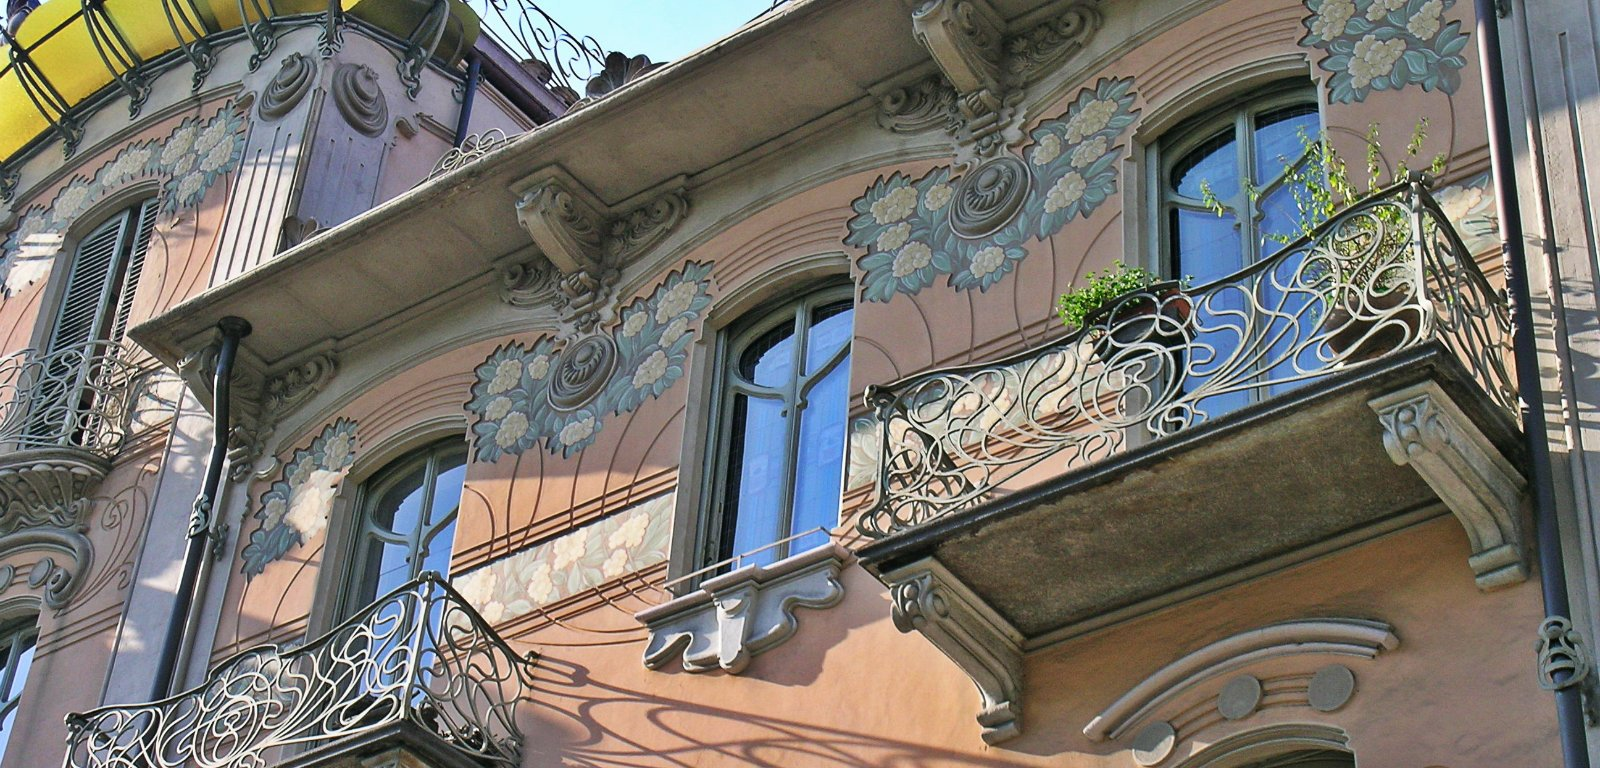 Art nouveau in Turin - CC Luca Galli, Flickr